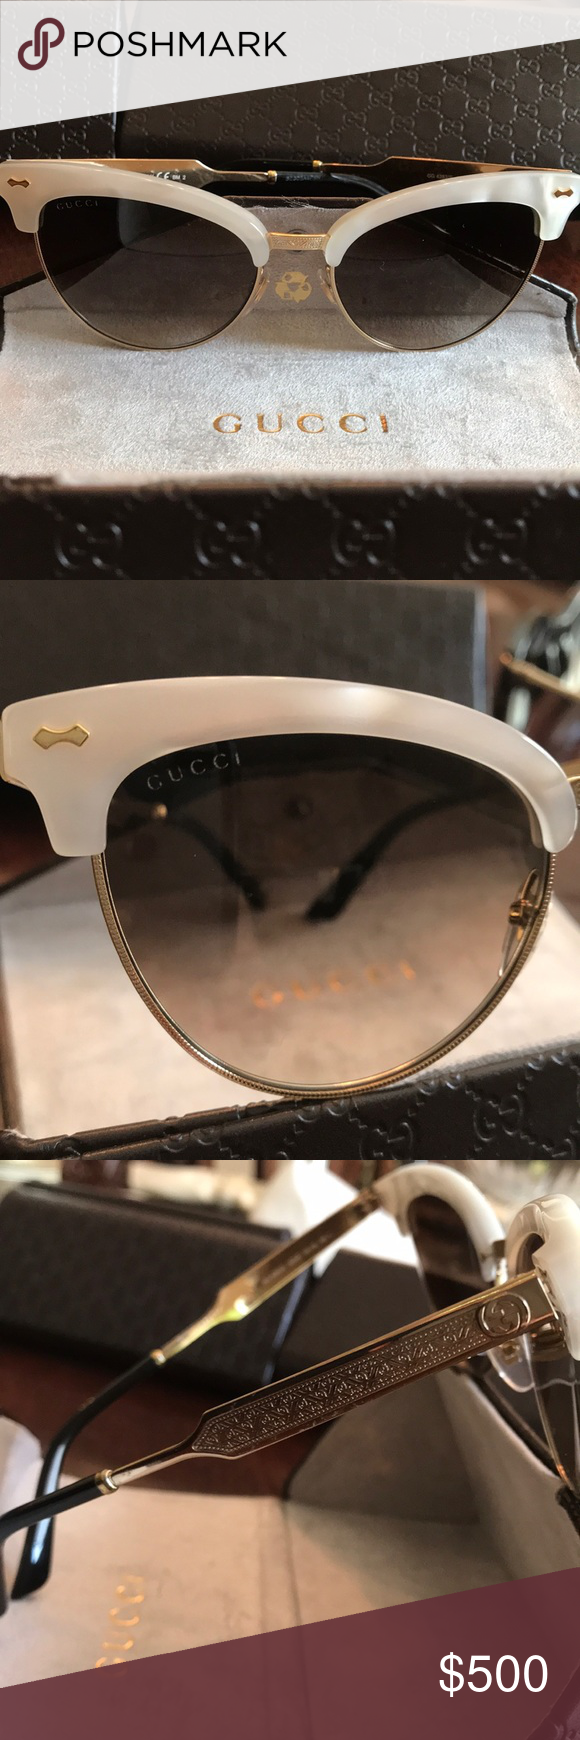 98c946a4f0f Gucci Sunglasses Gold Cat Eye Mother of Pearl Gucci Gg4283s New Damascato  Mother of Pearl Gold White Cat Eye ... GUCCI GG 4283 S Gucci Accessories ...